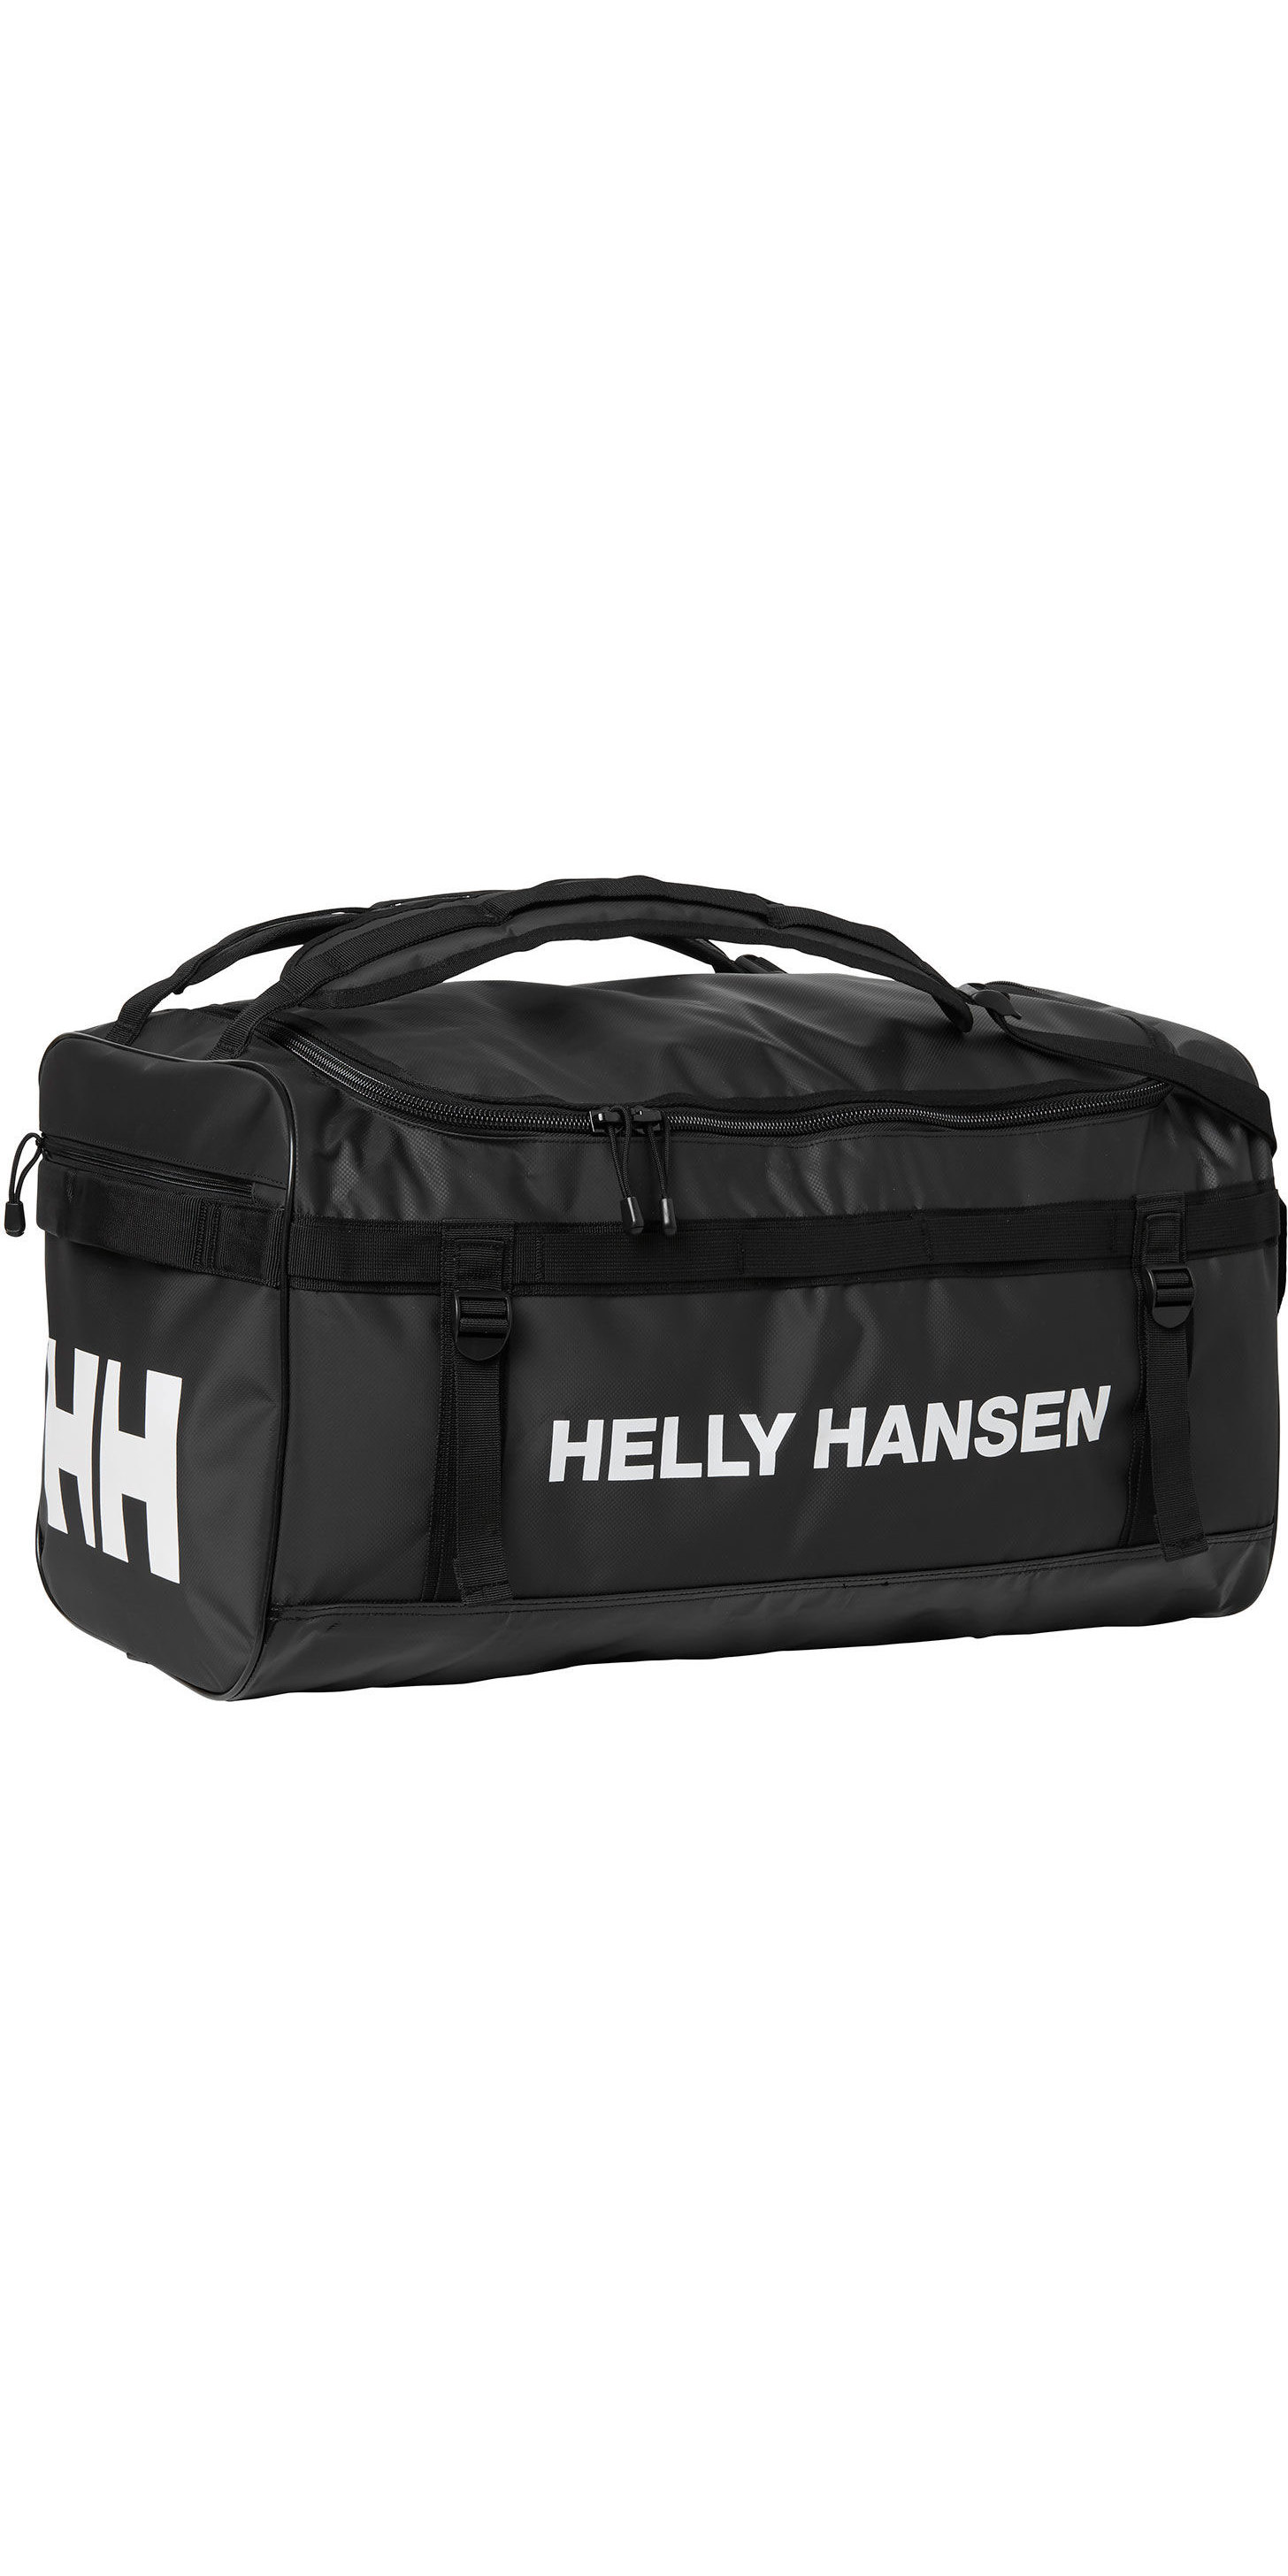 26841bfd72f 2019 Helly Hansen 50L Classic Duffel Bag 2 0 S Black 67167 - Holdall - Luggage  Dry Bags - by | Wetsuit Outlet